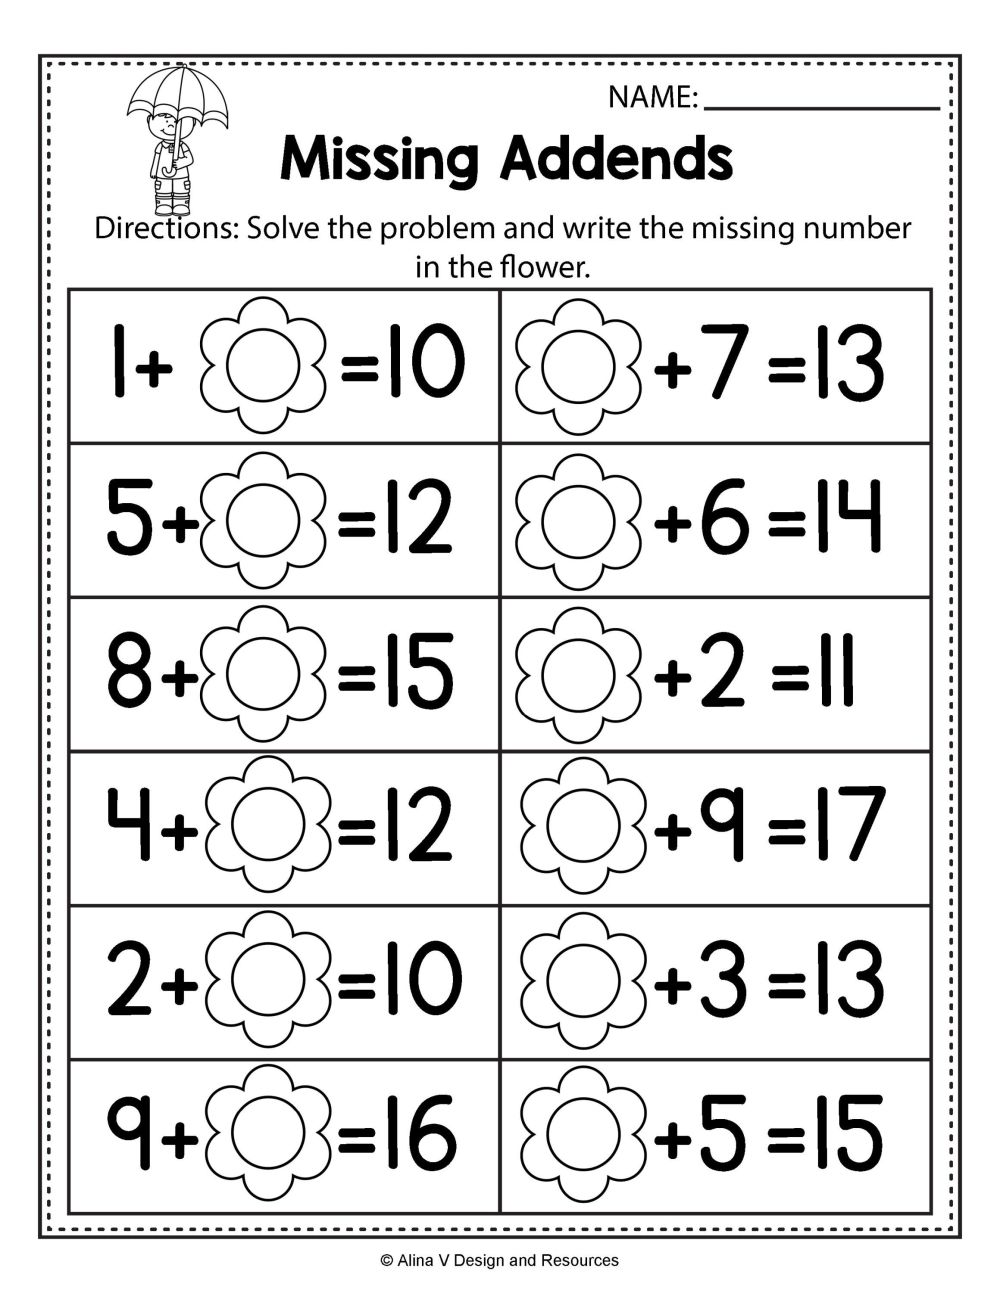 medium resolution of 17 Best 1st Grade Math Worksheets For Fun Times images on Best Worksheets  Collection